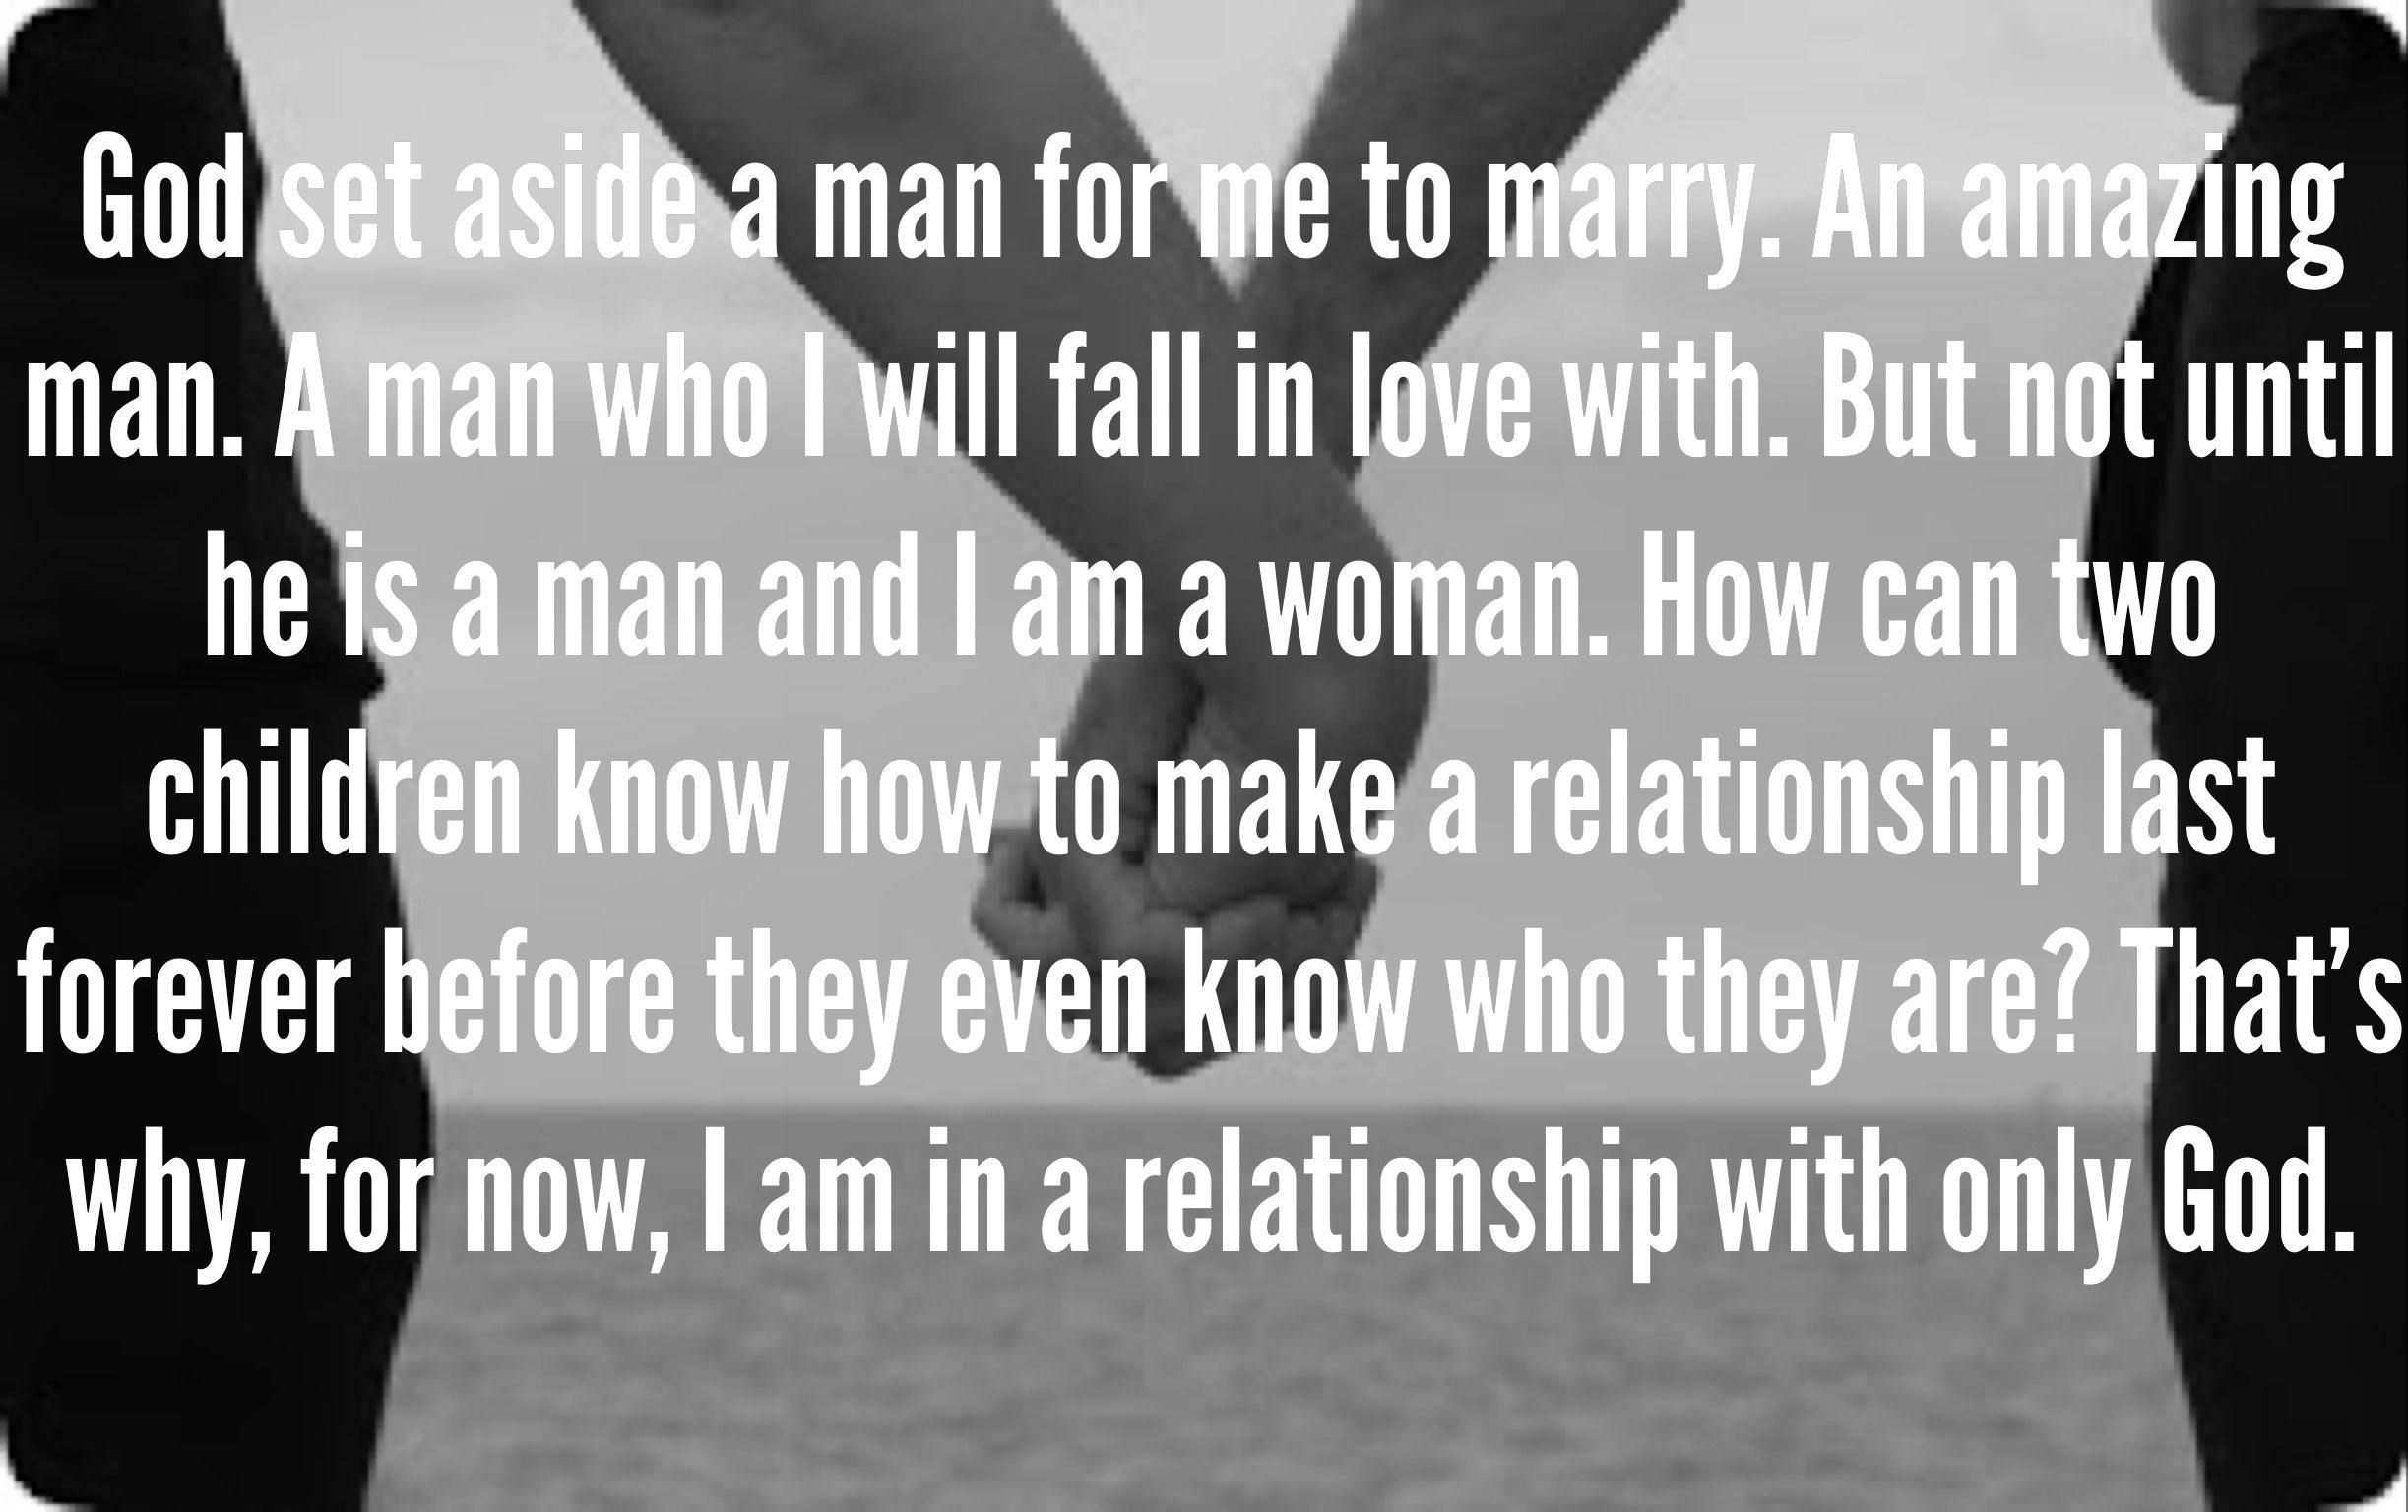 This is so true  Wait till you are ready for marriage to